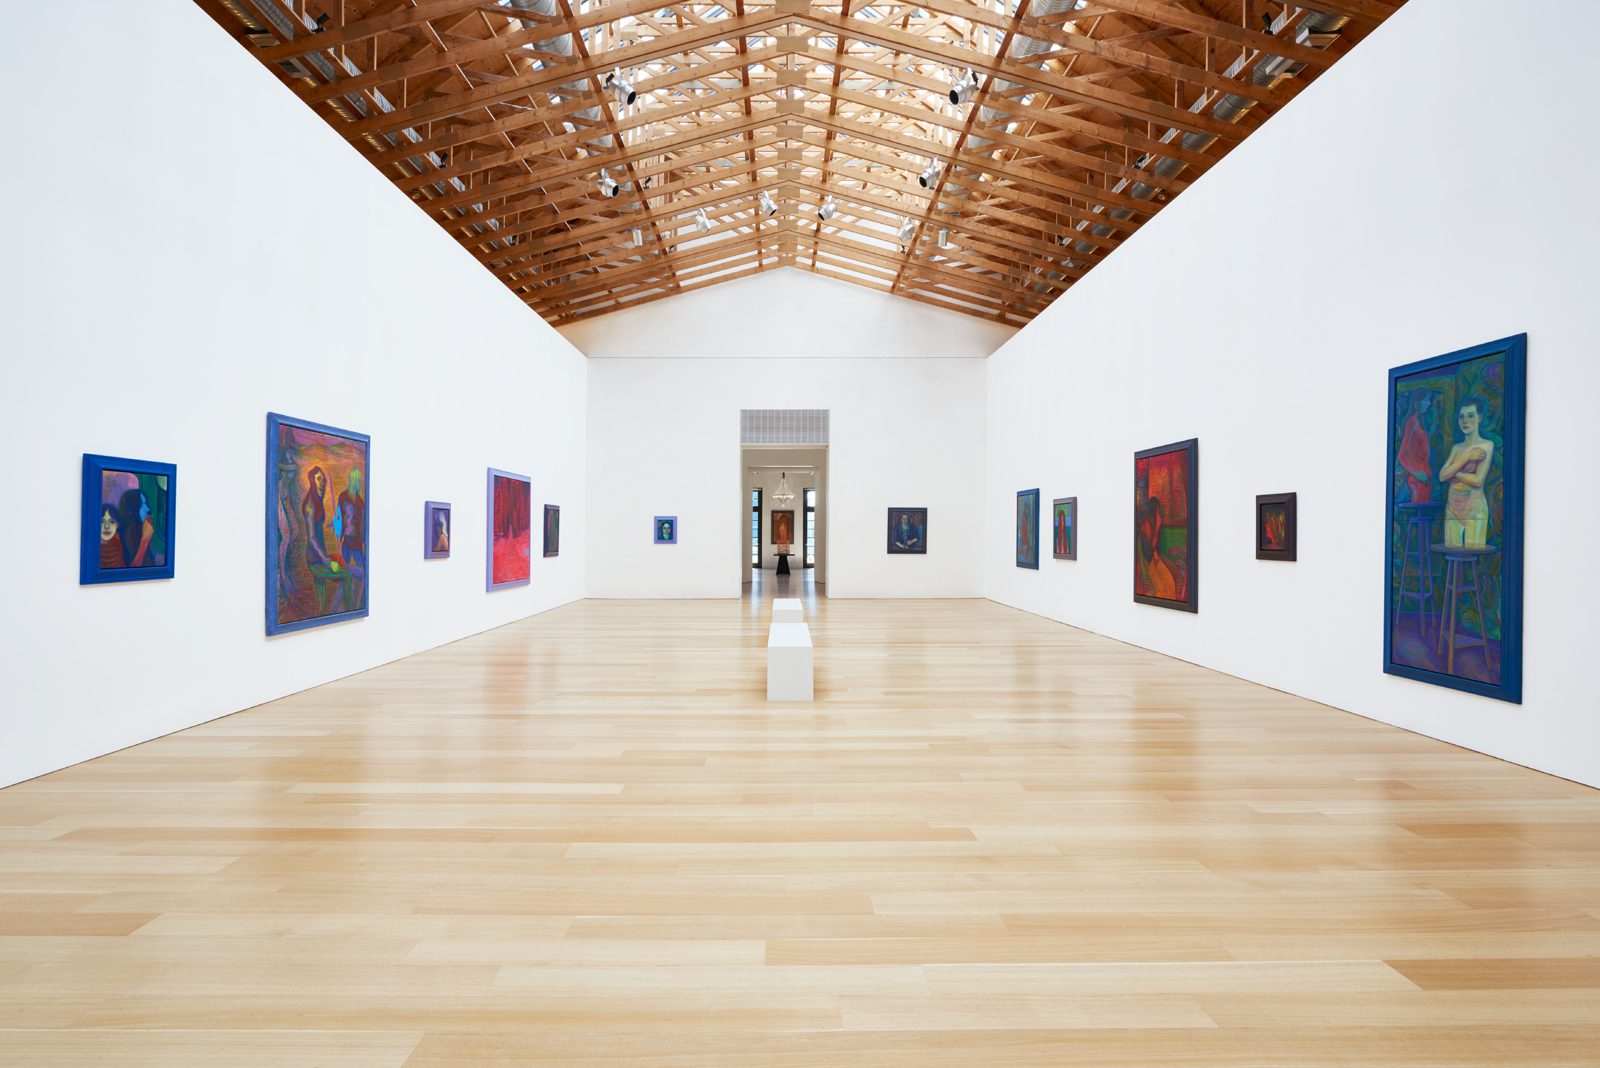 Installation view, Steven Shearer at The Brant Foundation. © Steven Shearer. Courtesy of the artist, Galerie Eva Presenhuber, Zurich, and Gavin Brown's enterprise, New York.